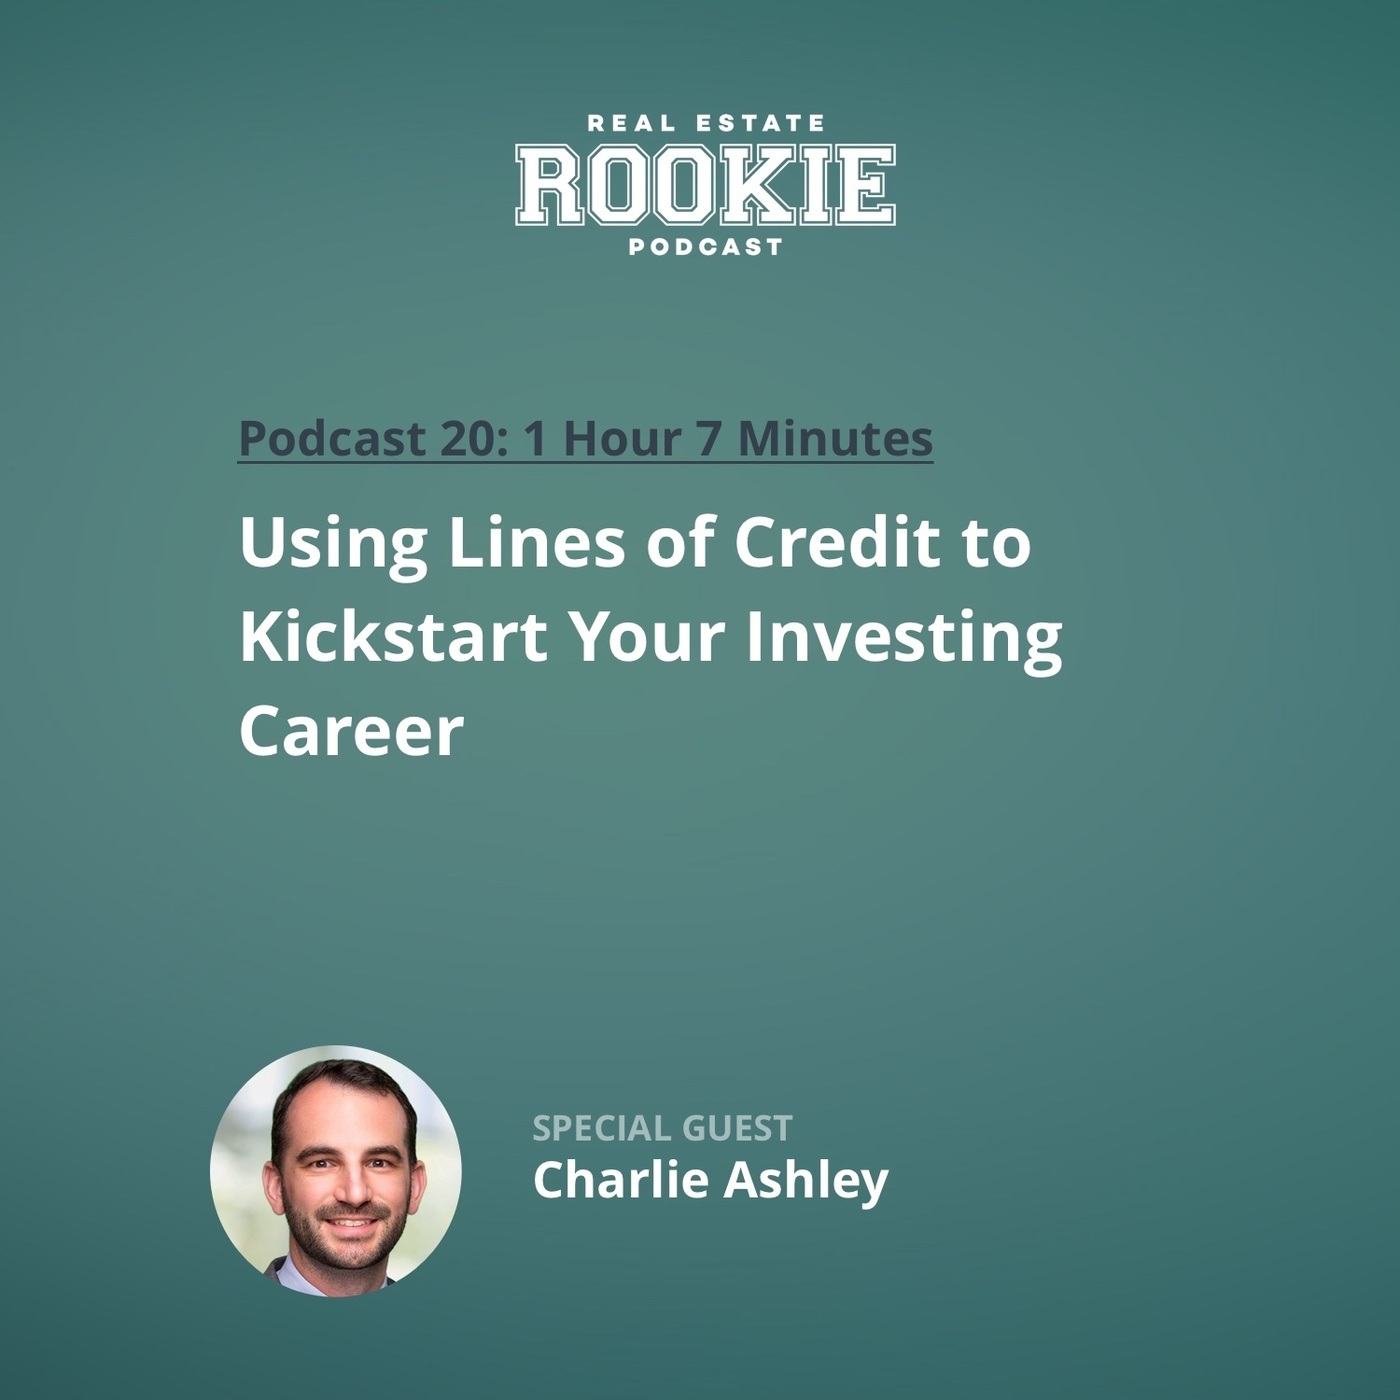 Using Lines of Credit to Kickstart Your Investing Career with Charlie Ashley